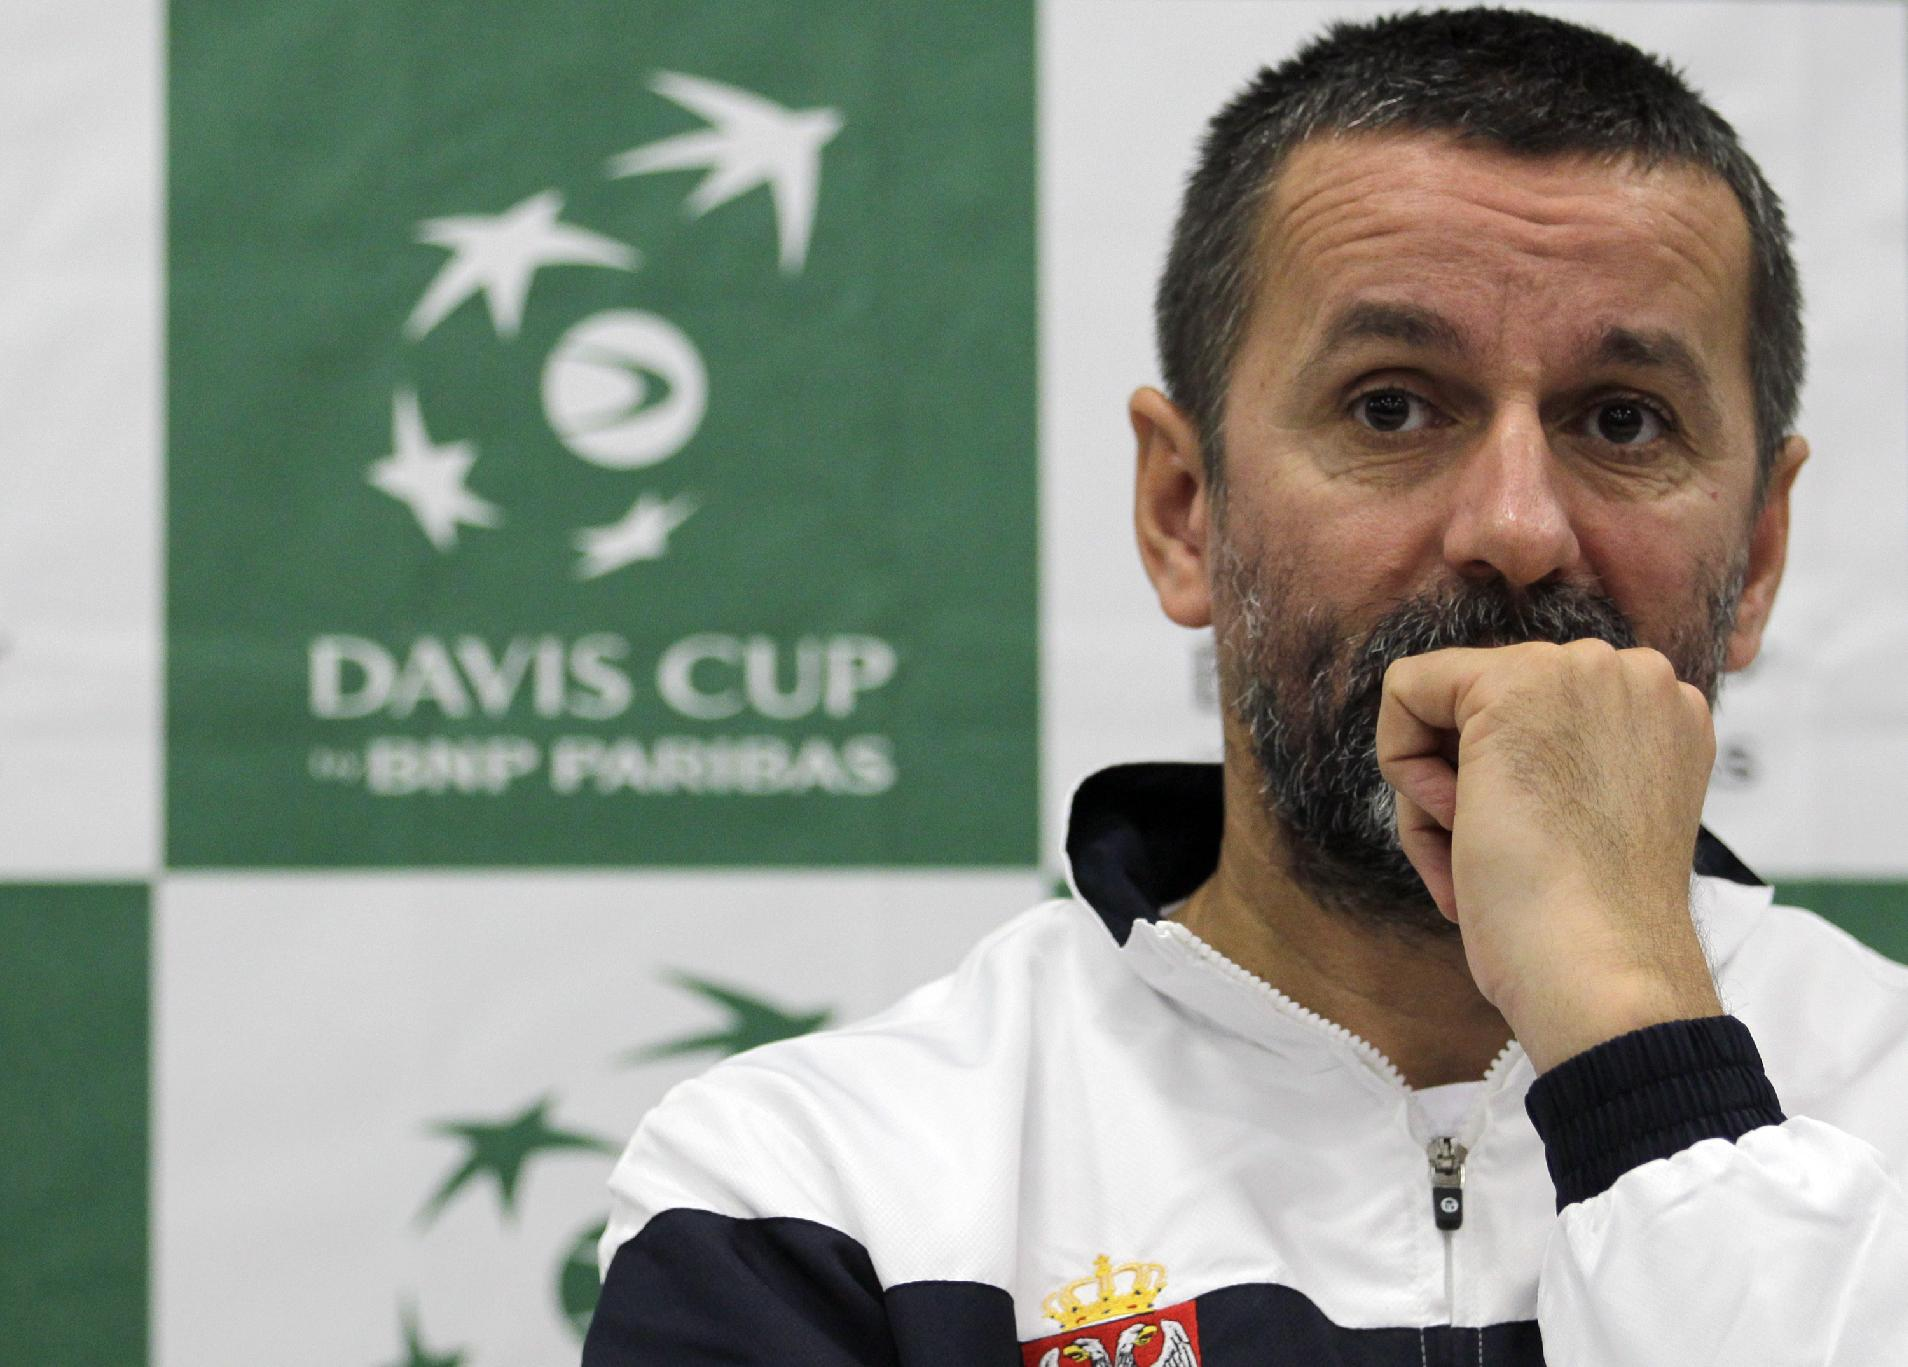 Serbian Davis Cup team captain Bogdan Obradovic attends a news conference in Belgrade, Serbia, Wednesday, Nov. 13, 2013. Serbia will play against Czech Republic for the Davis Cup Final starting on November 15-17, in Belgrade